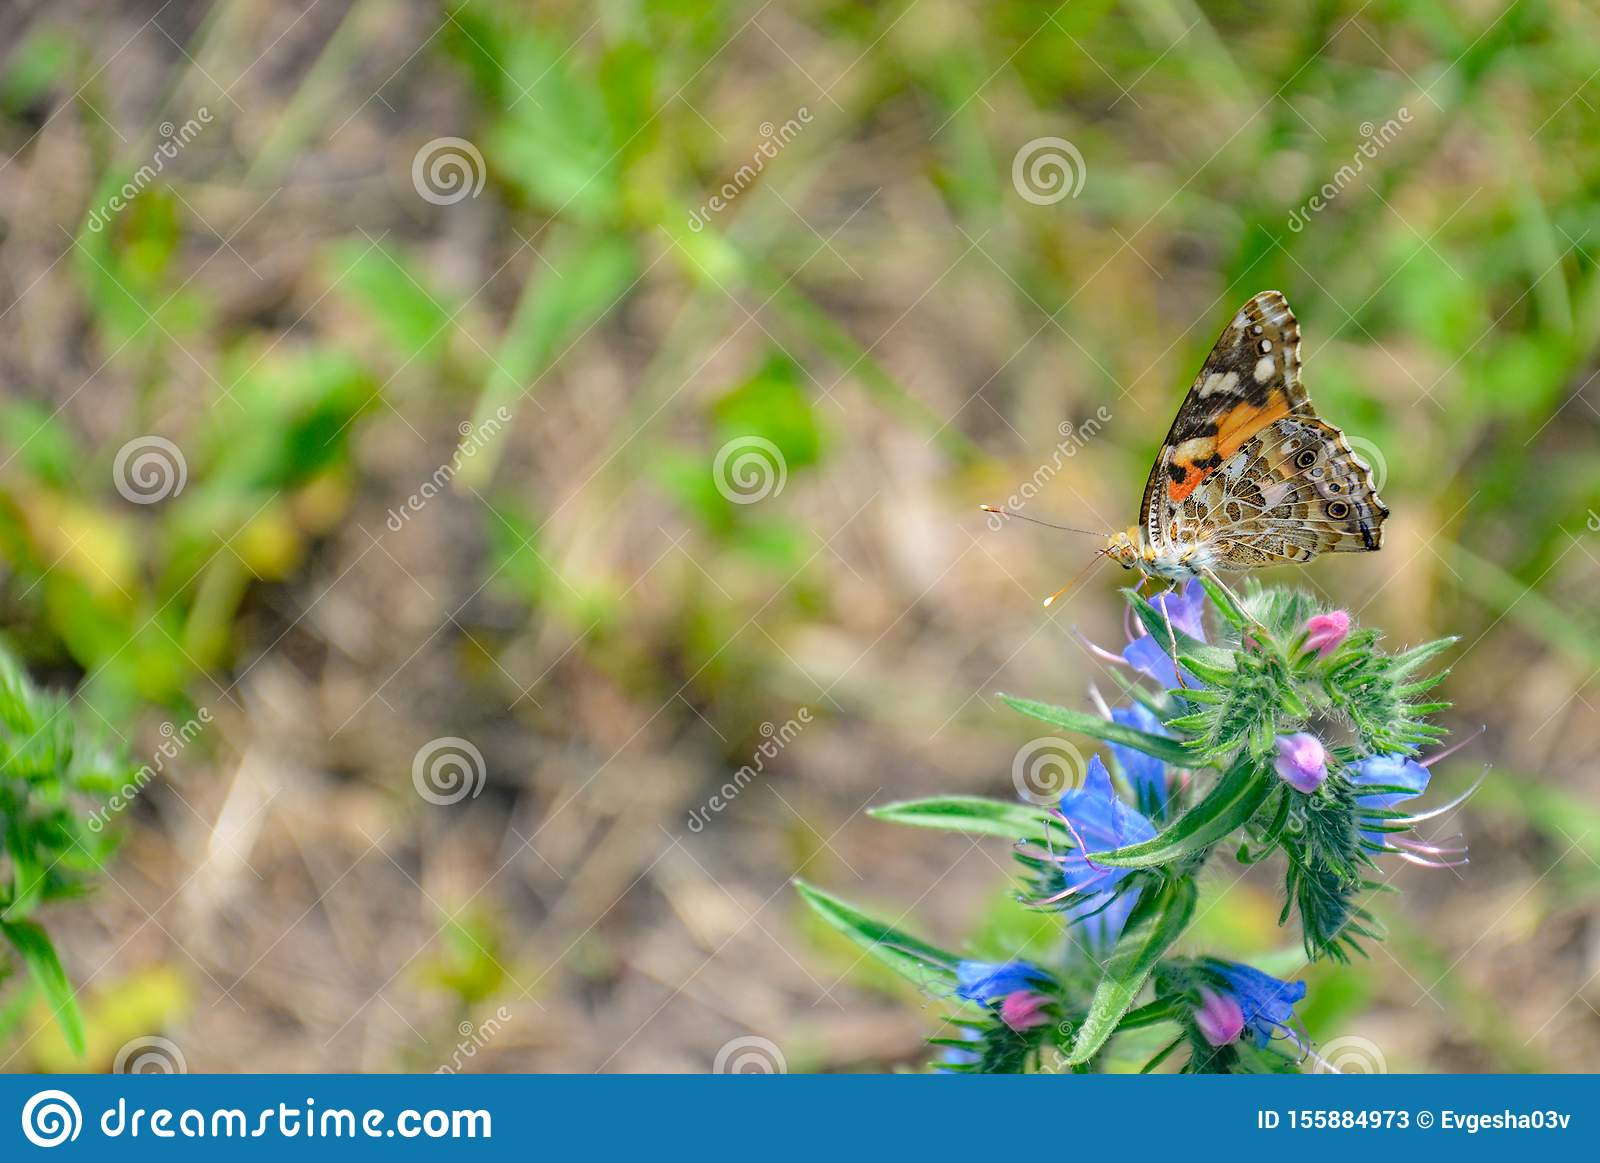 Butterfly Species Vanessa Cardui Stock Images - Download ...